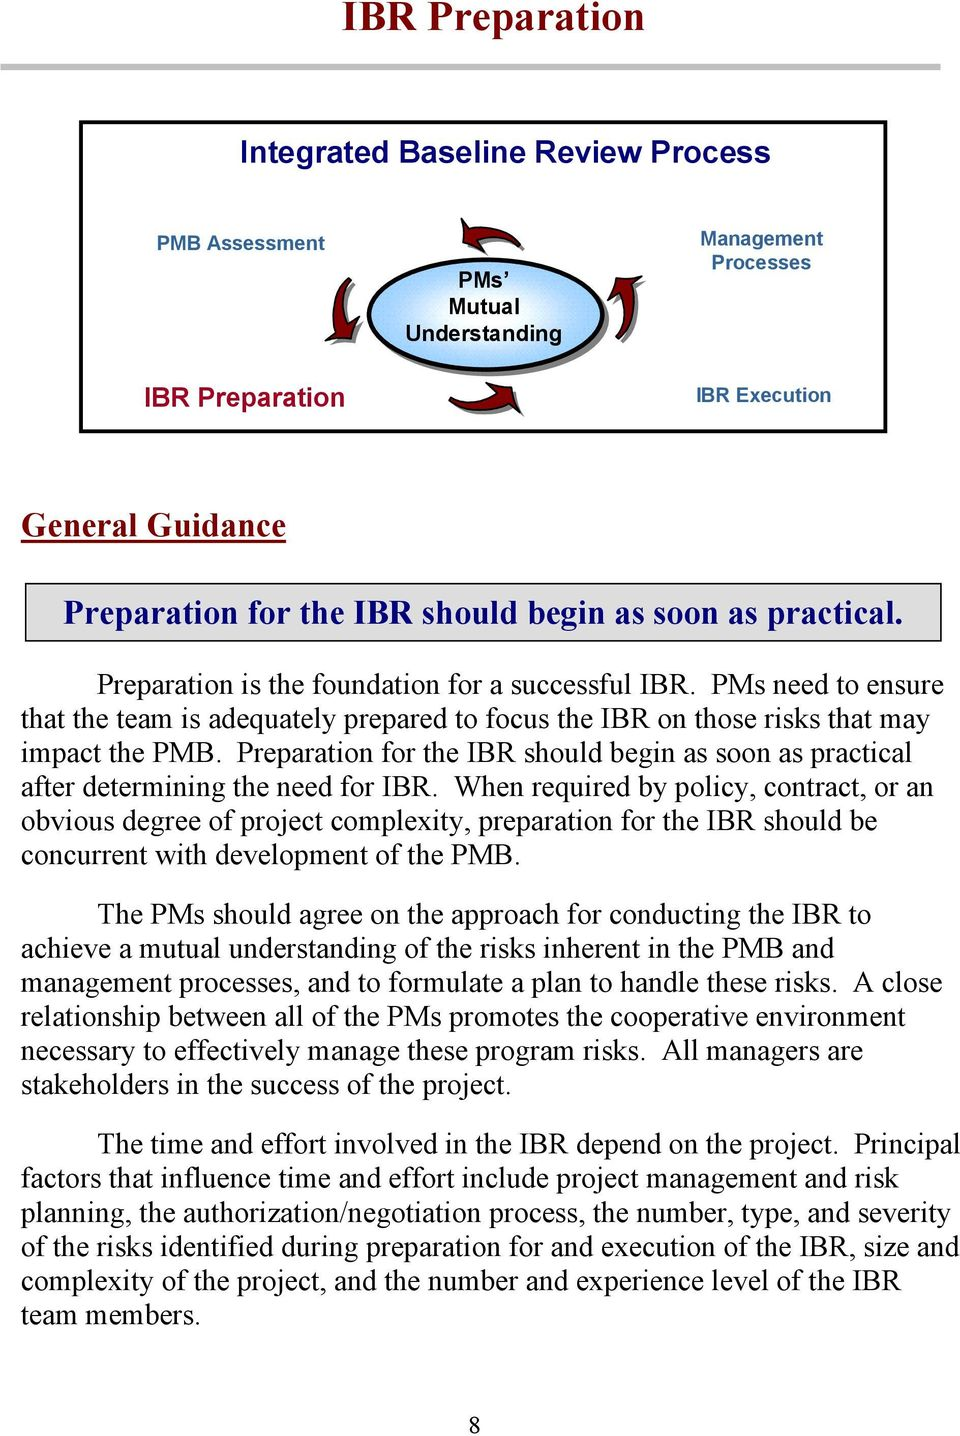 Preparation for the IBR should begin as soon as practical after determining the need for IBR.